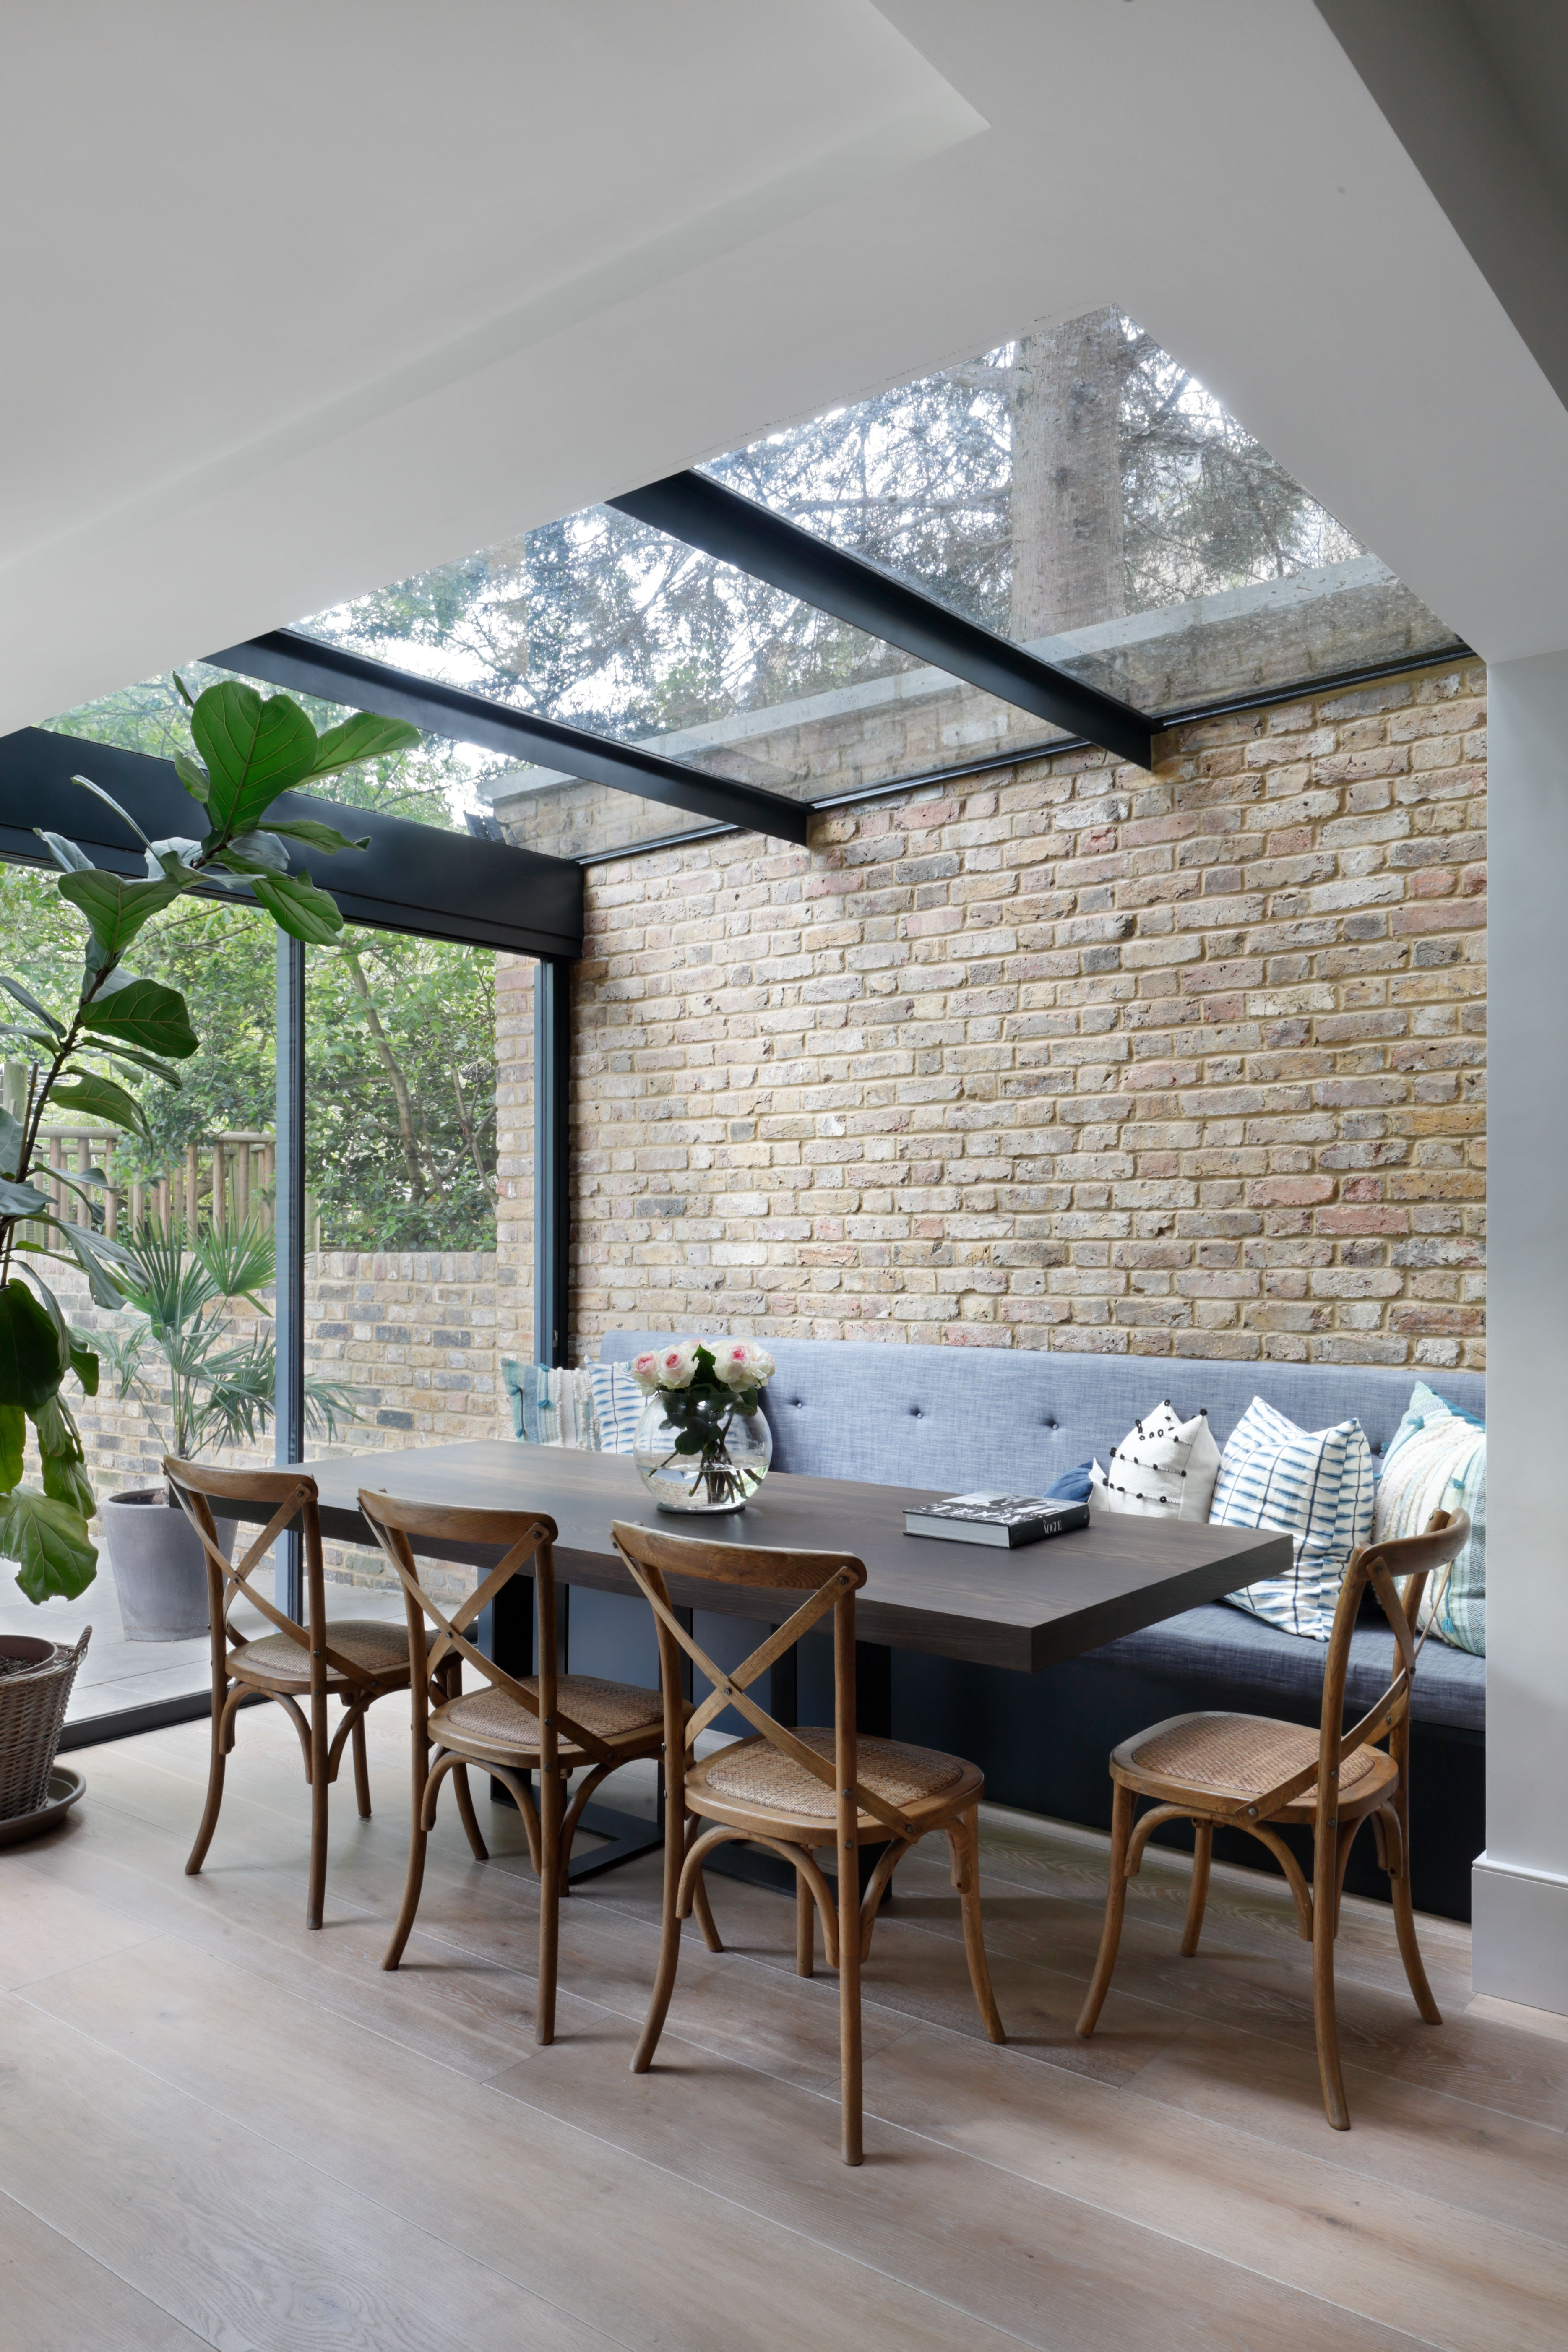 Kitchen extension ideas / Before & After / Catherine Wilman / Maida Vale